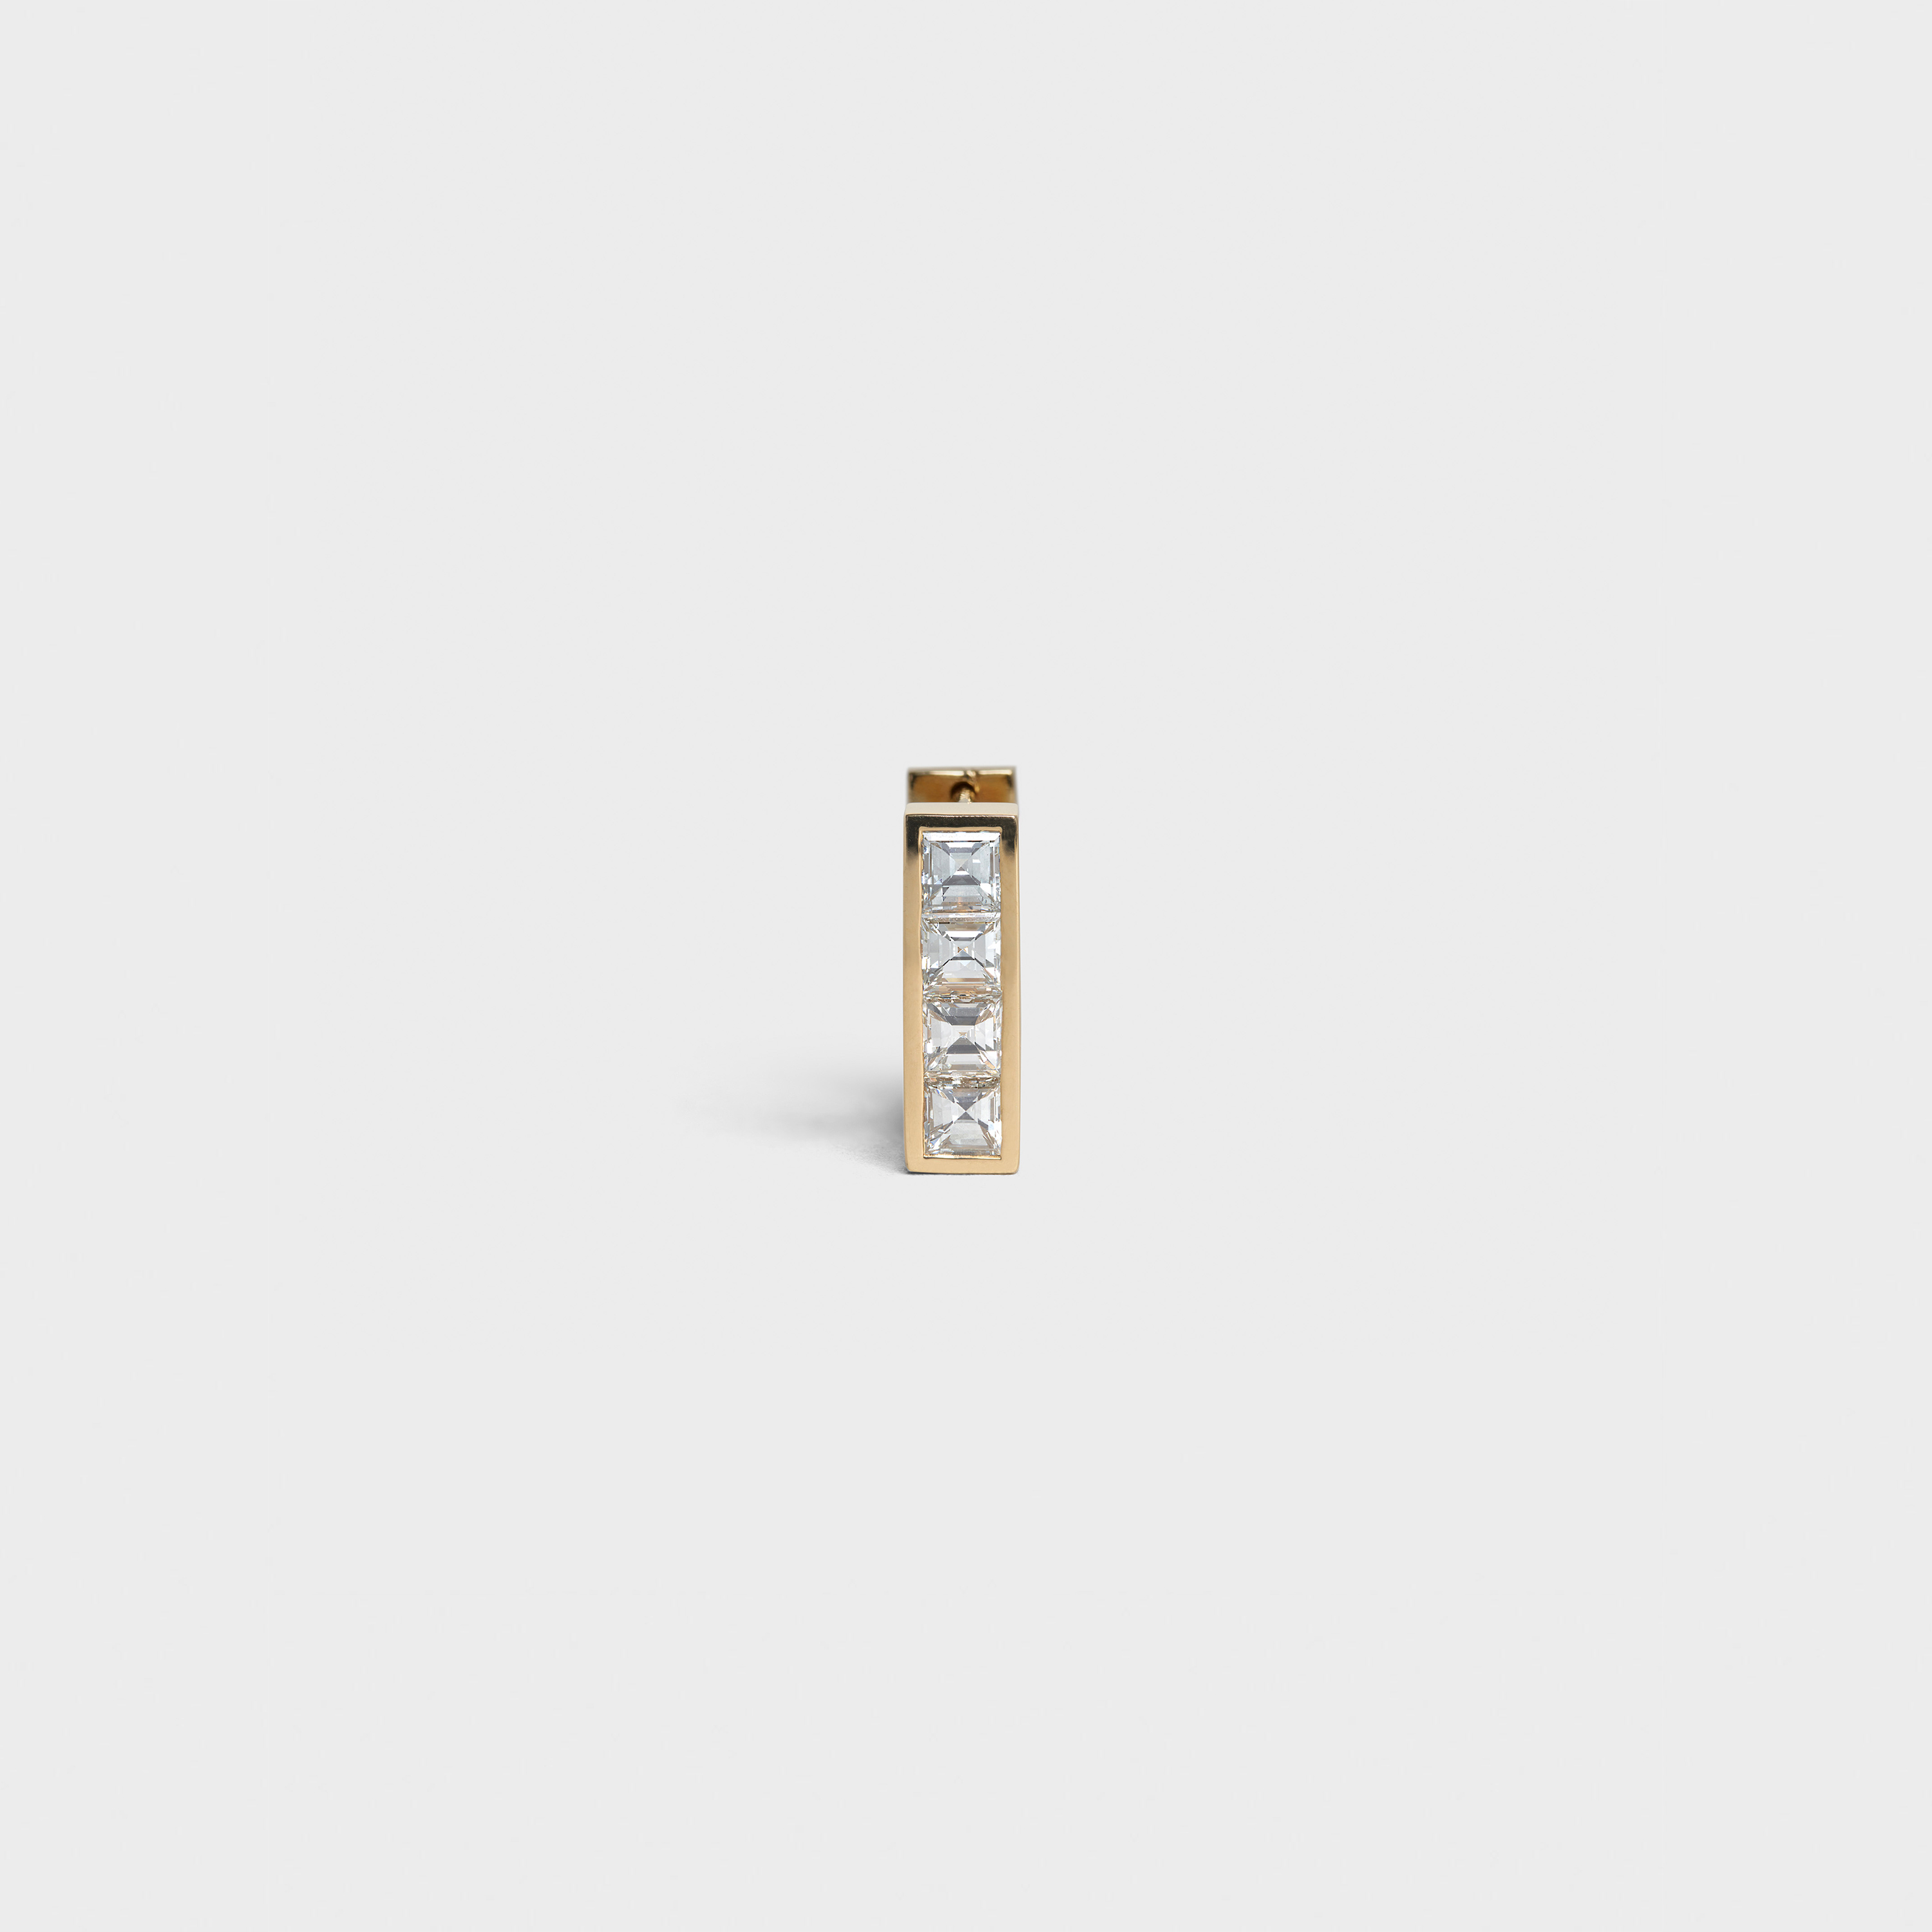 Celine Sentimental Pavée Square Earring in Yellow Gold and Diamond | CELINE